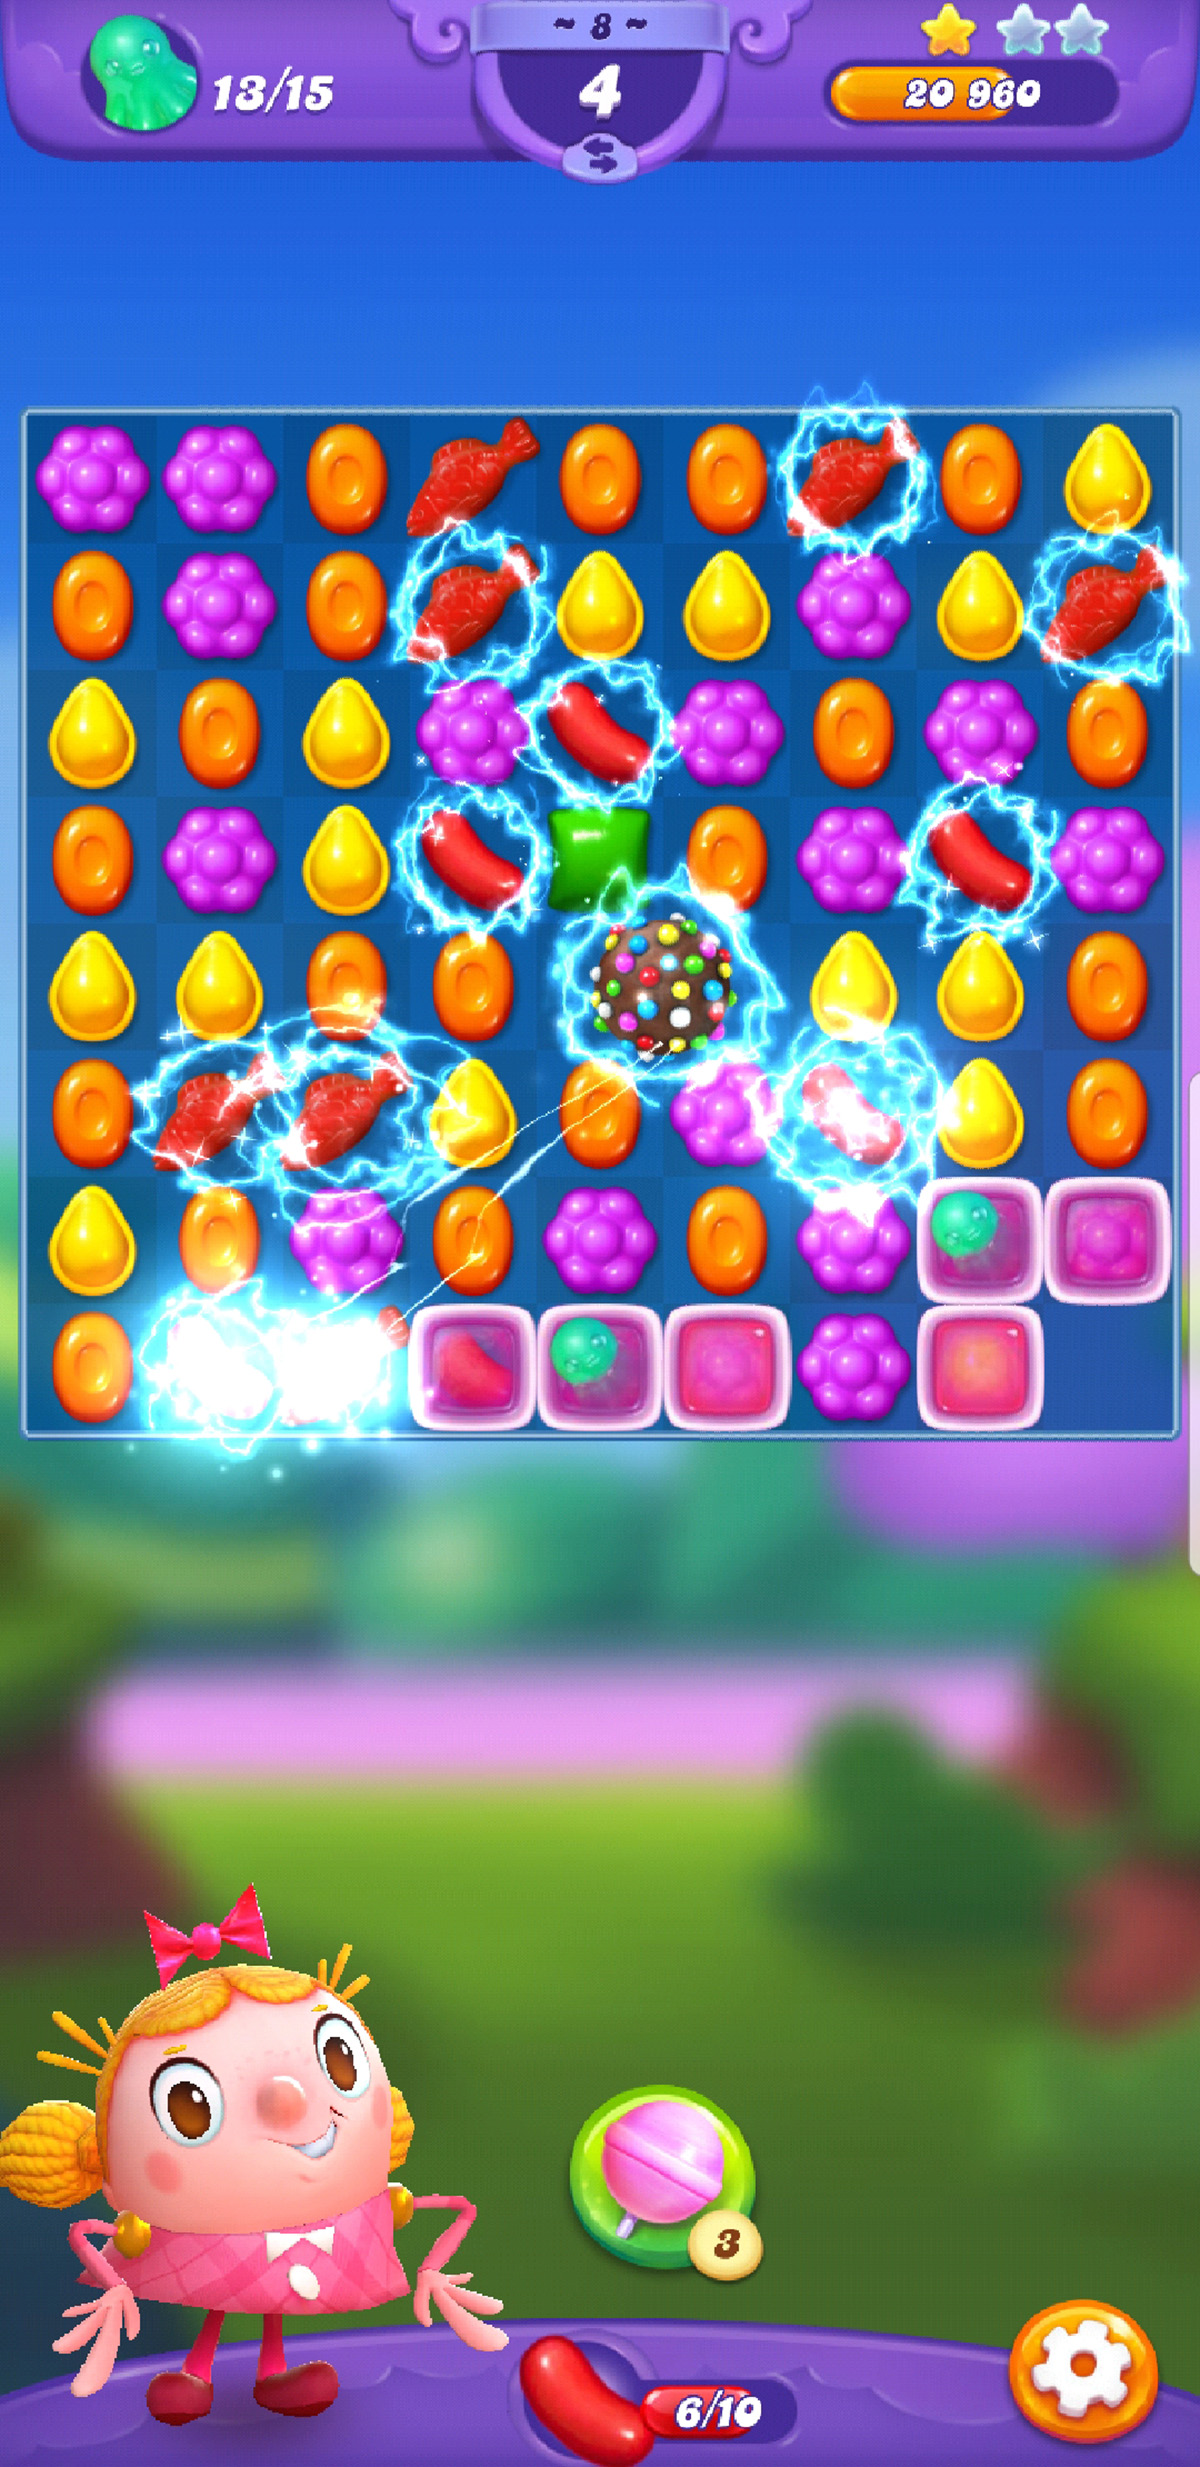 Candy Crush Friends Saga cheats and tips - Clearing levels and fast